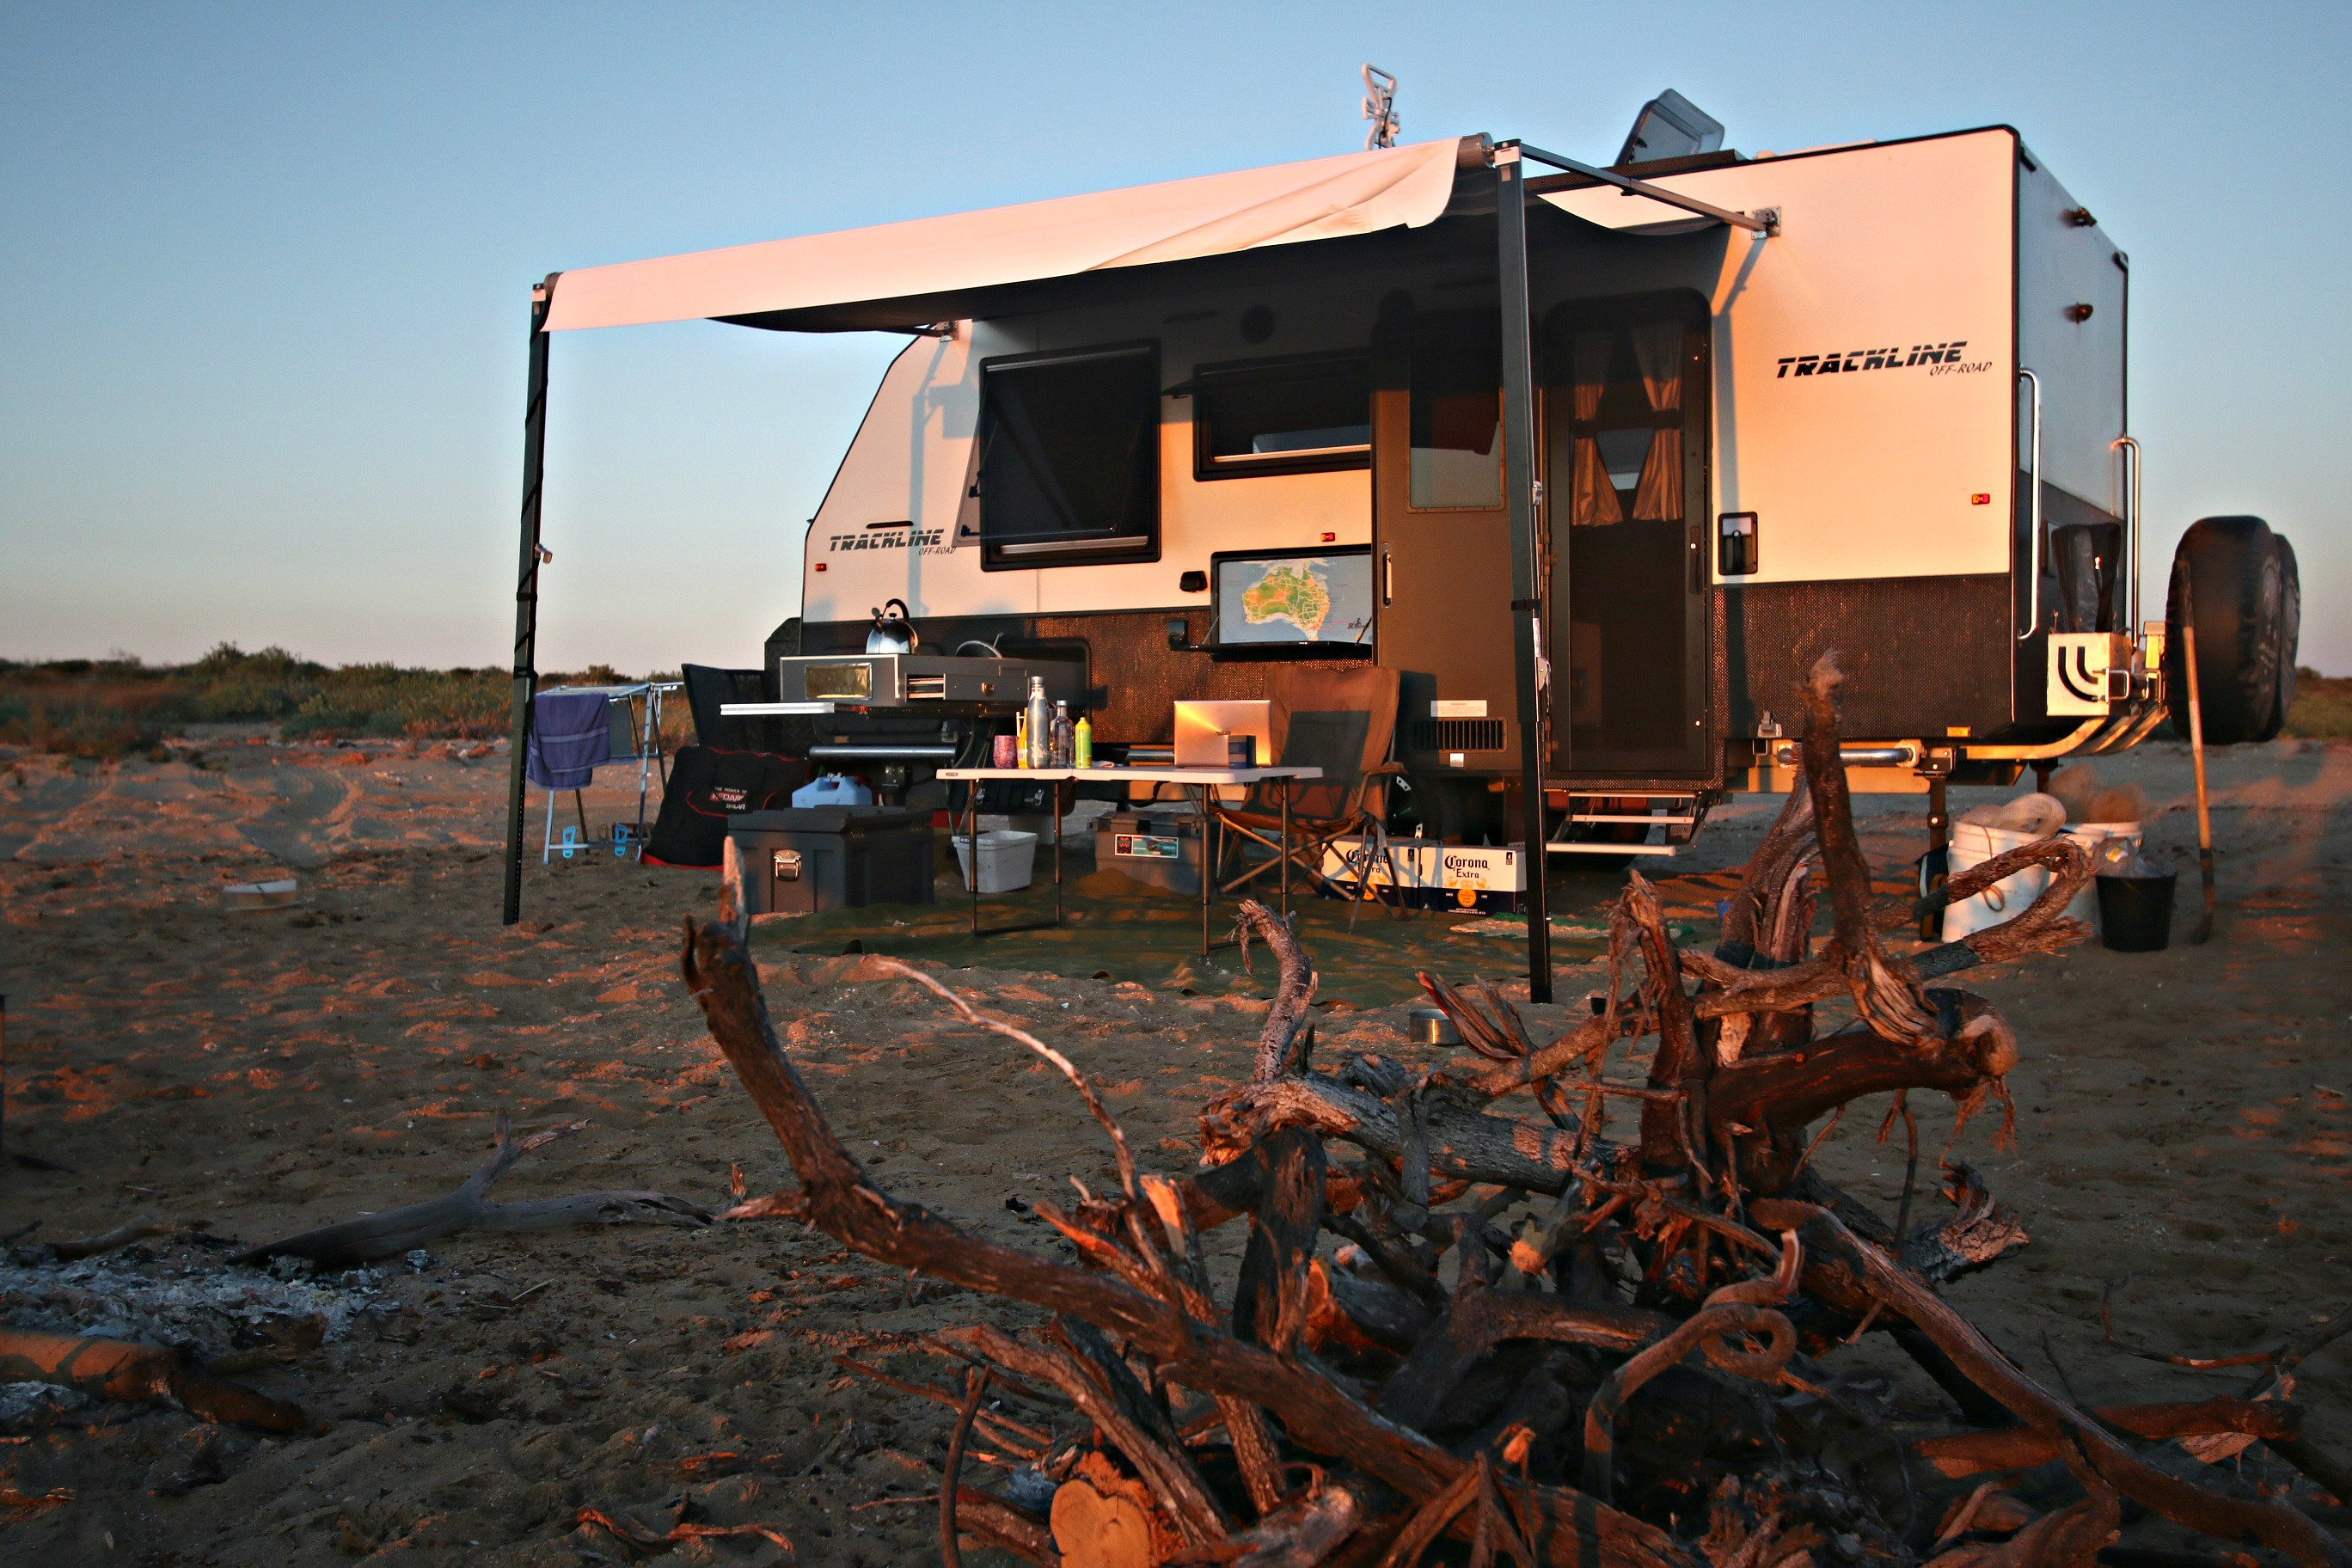 Exterior View of the 17.6m Trackline Caravan